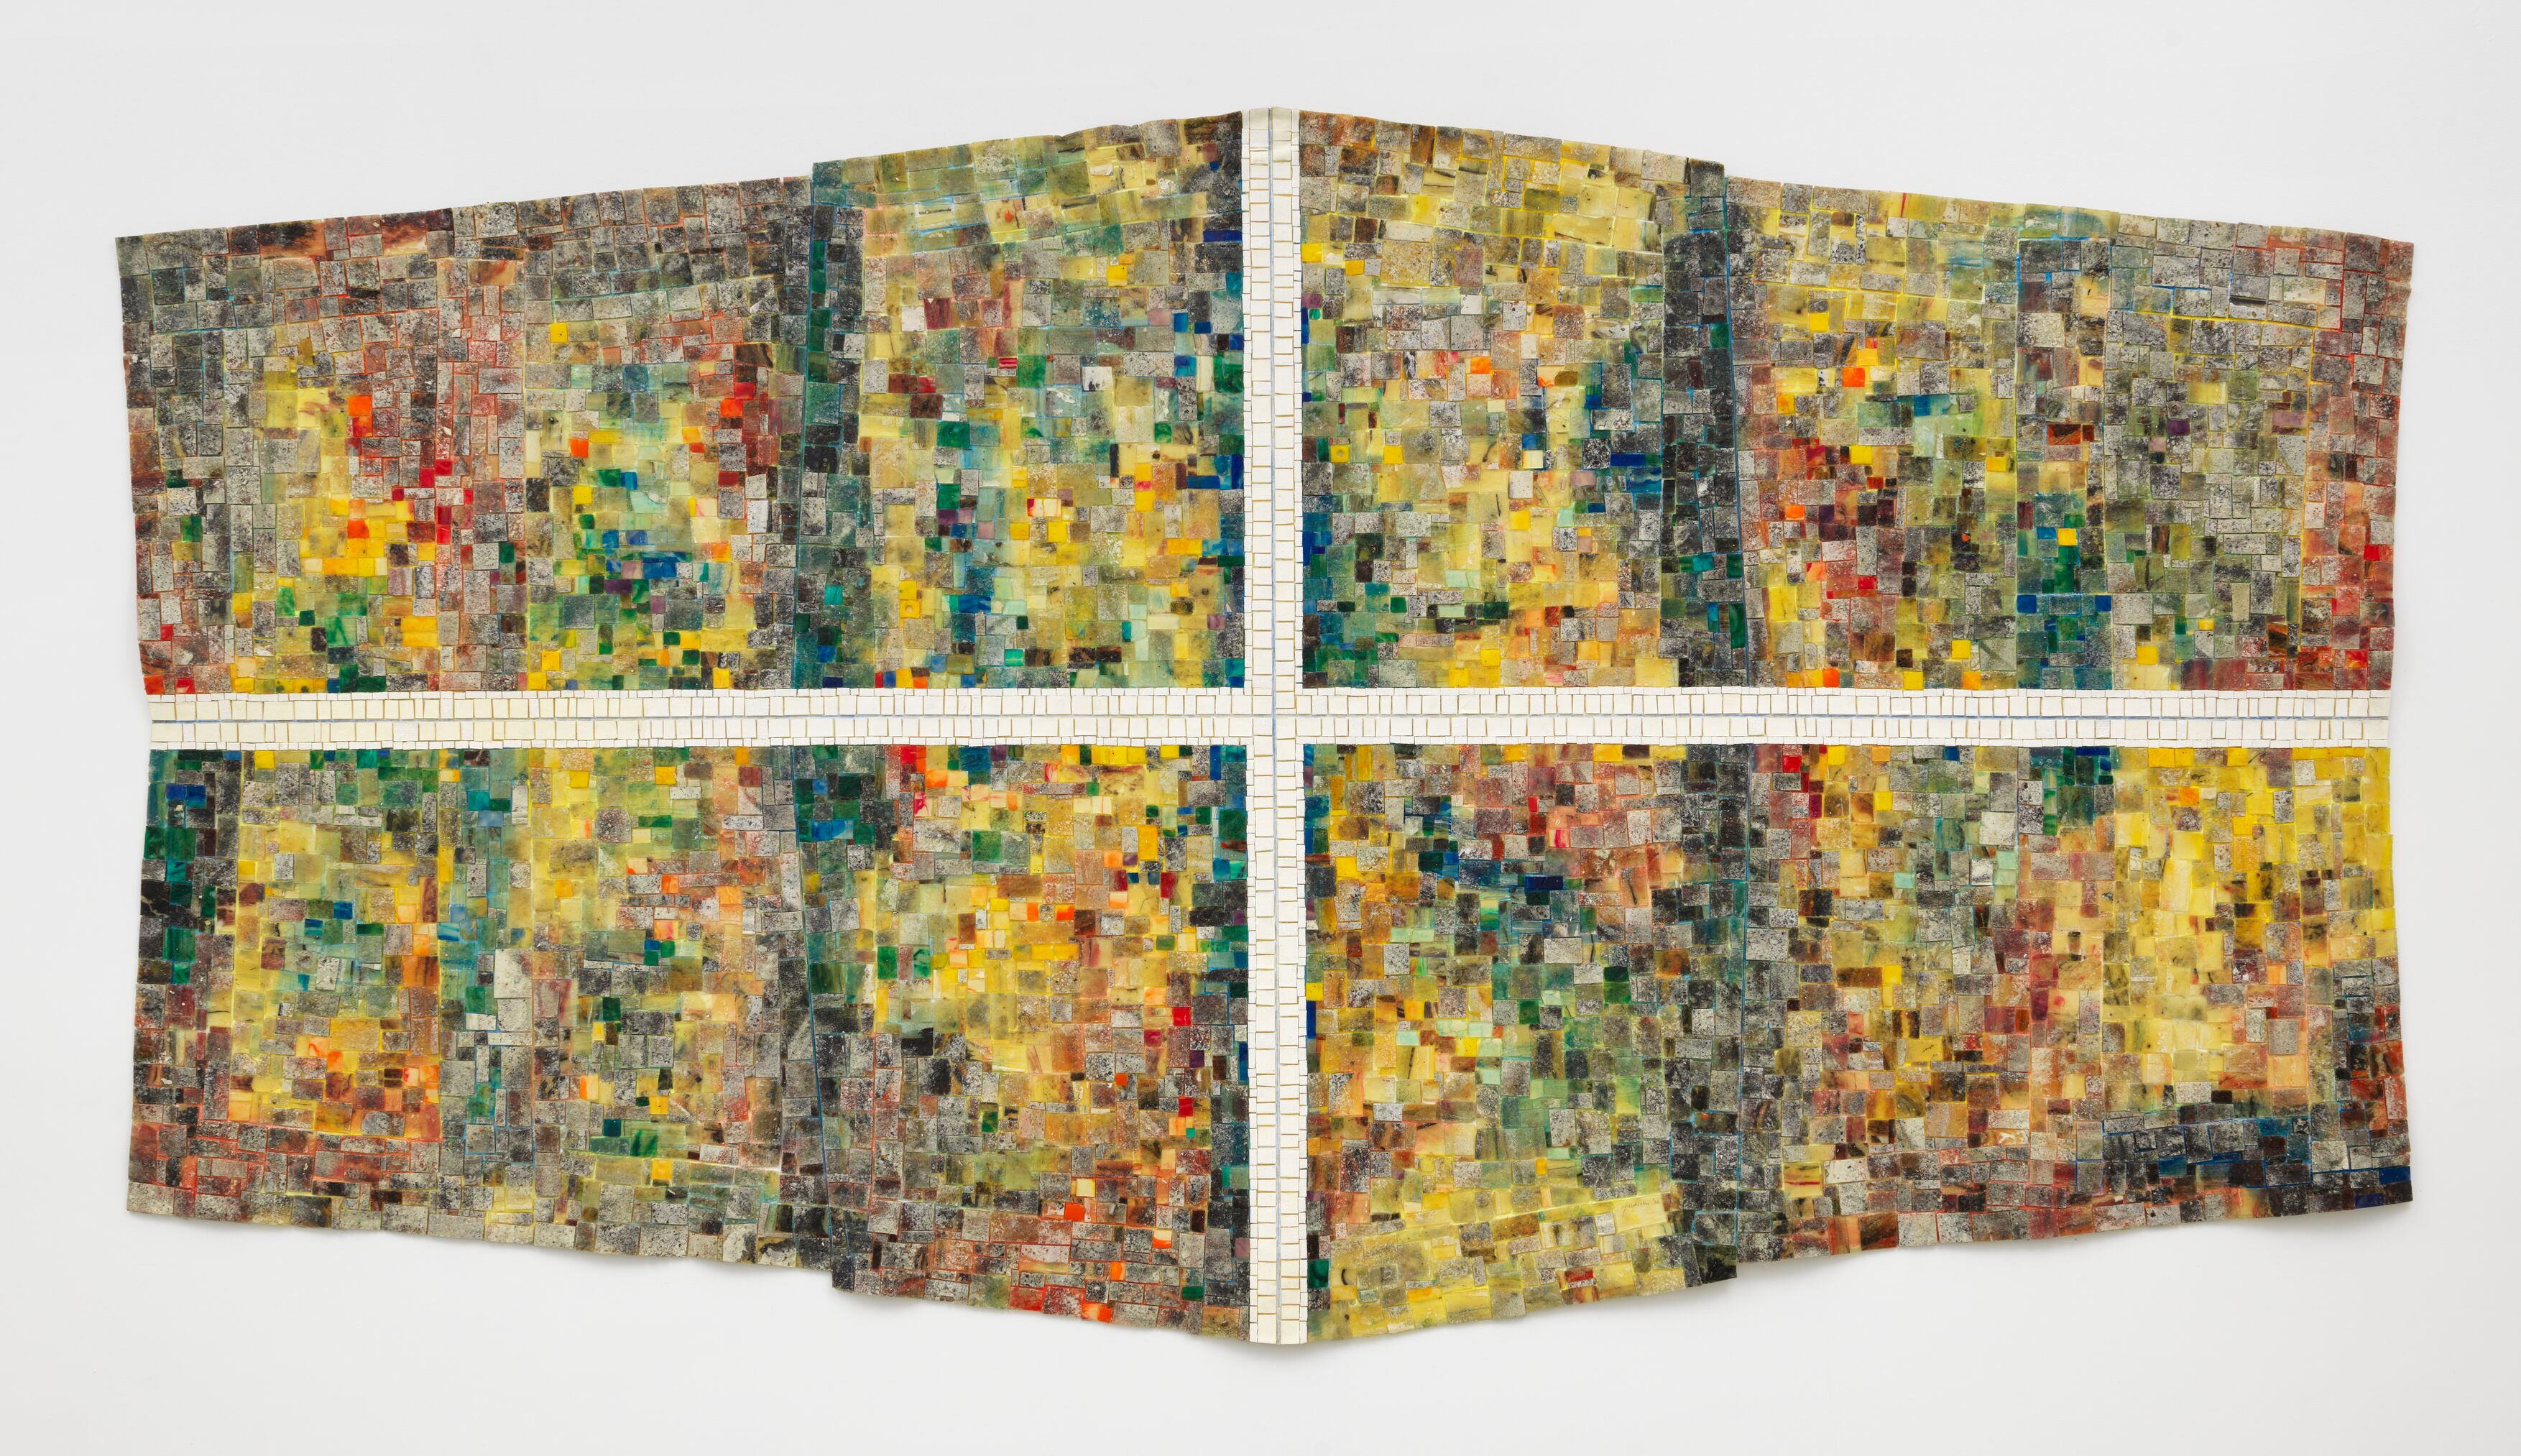 Mask III: For The Children of Dunblane, Scotland, 1996, Acrylic and recycled glass on canvas, 167.6 x 312.4 cm / 66 x 123 in